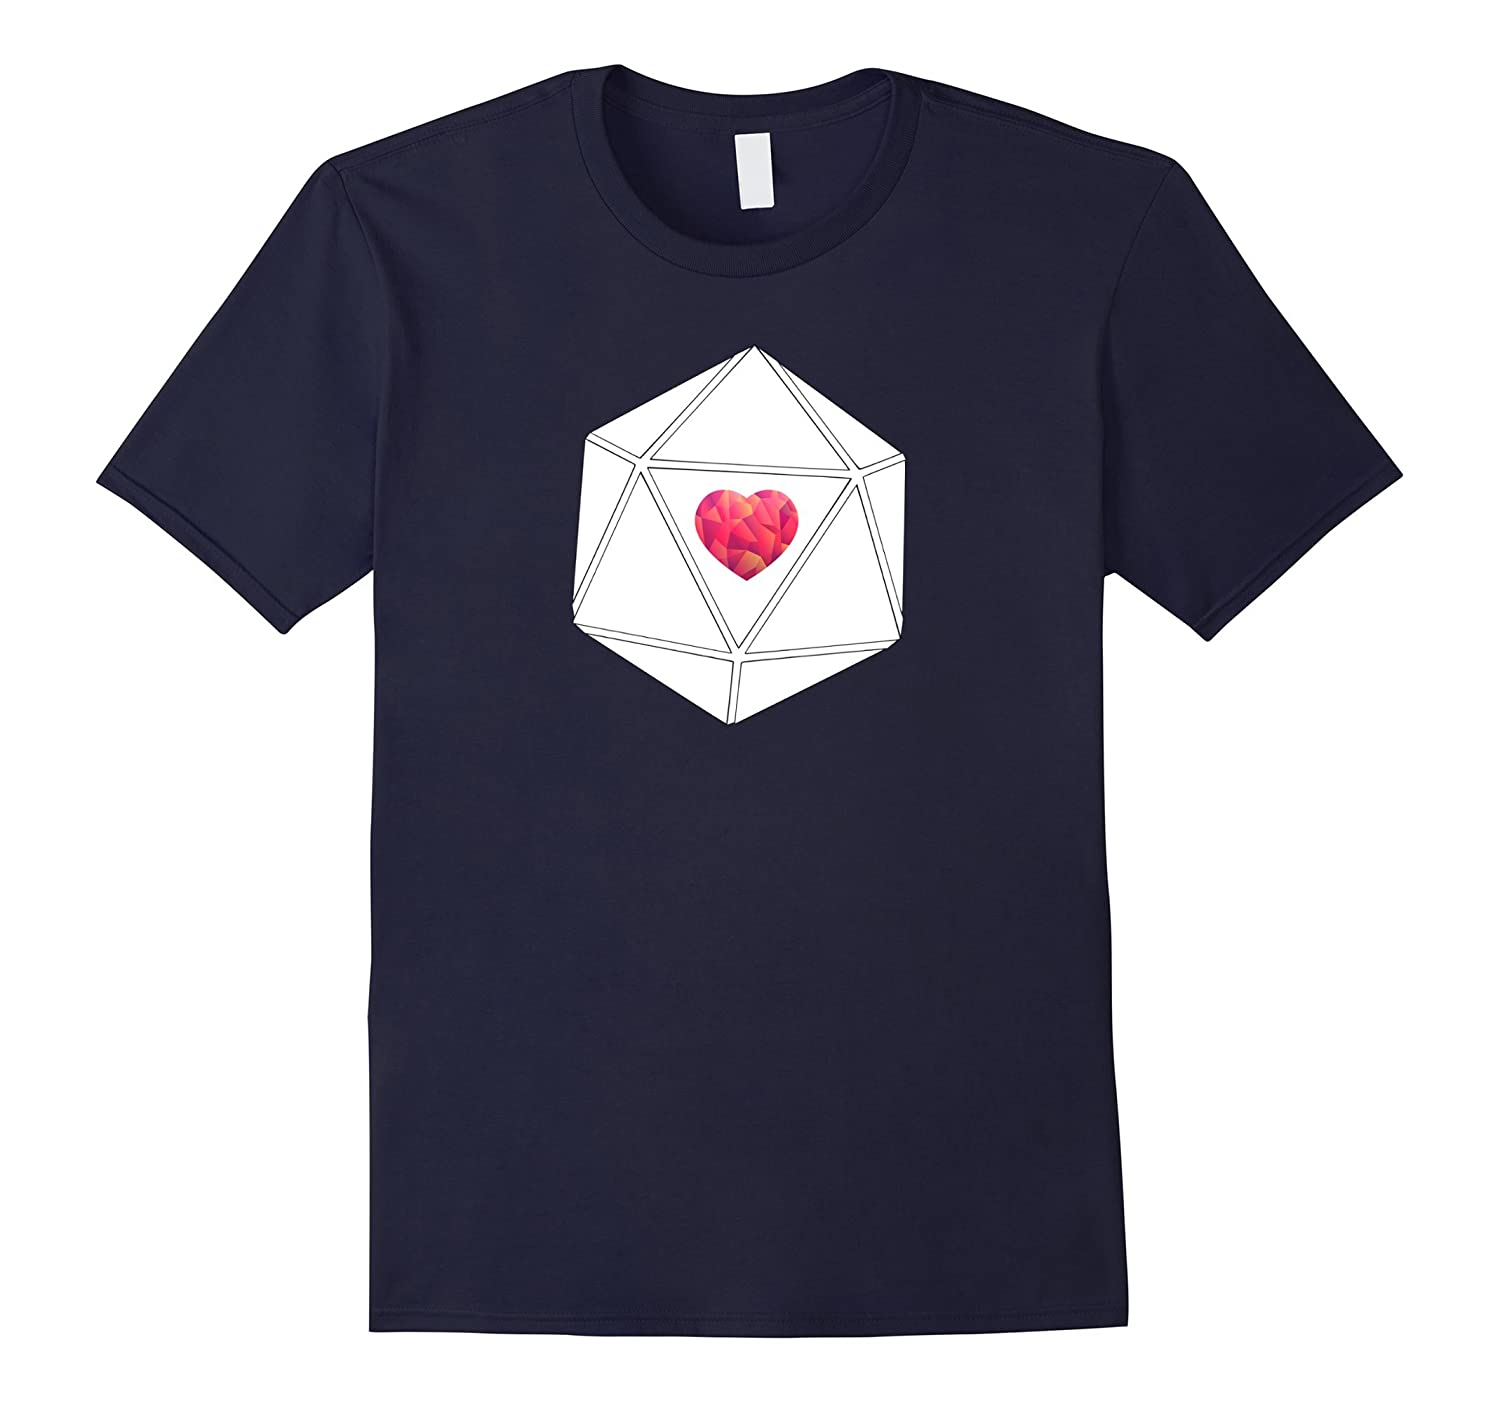 20d Heart Love - Dungeons Role Playing Tee for Girls Women-CD